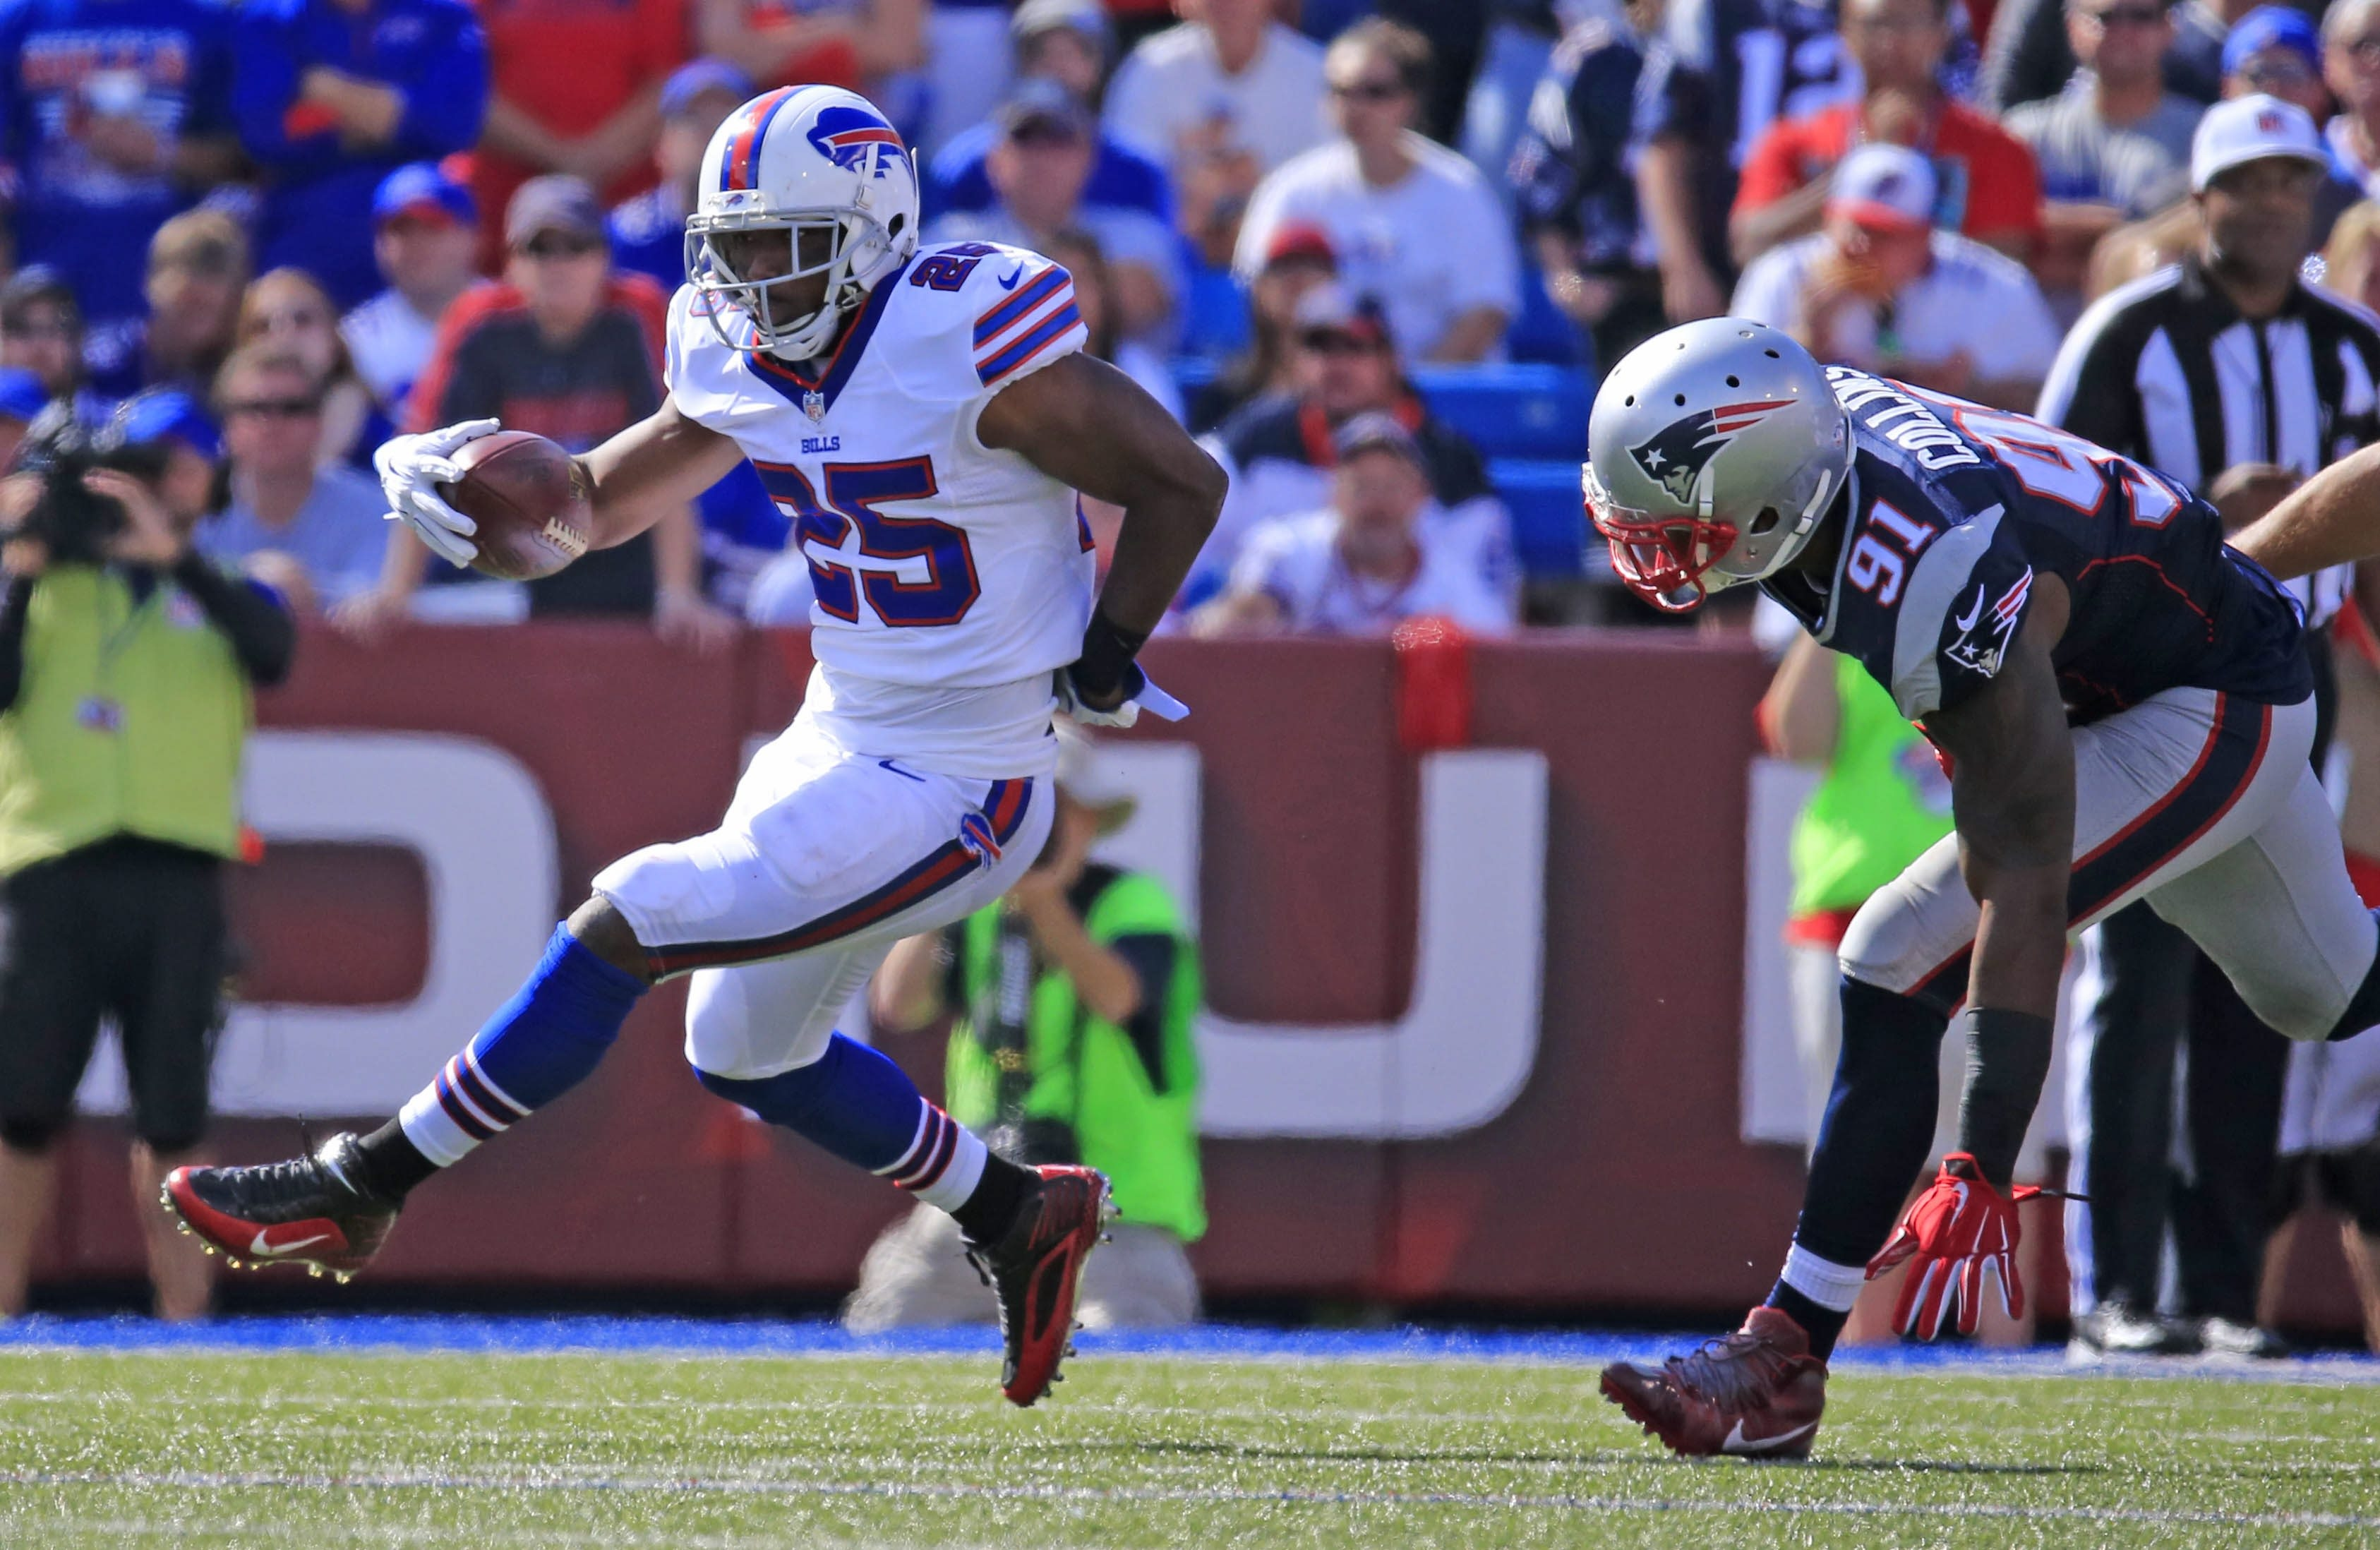 It's sometimes forgotten LeSean McCoy is only 28 and may still have some tread left on his wheels.